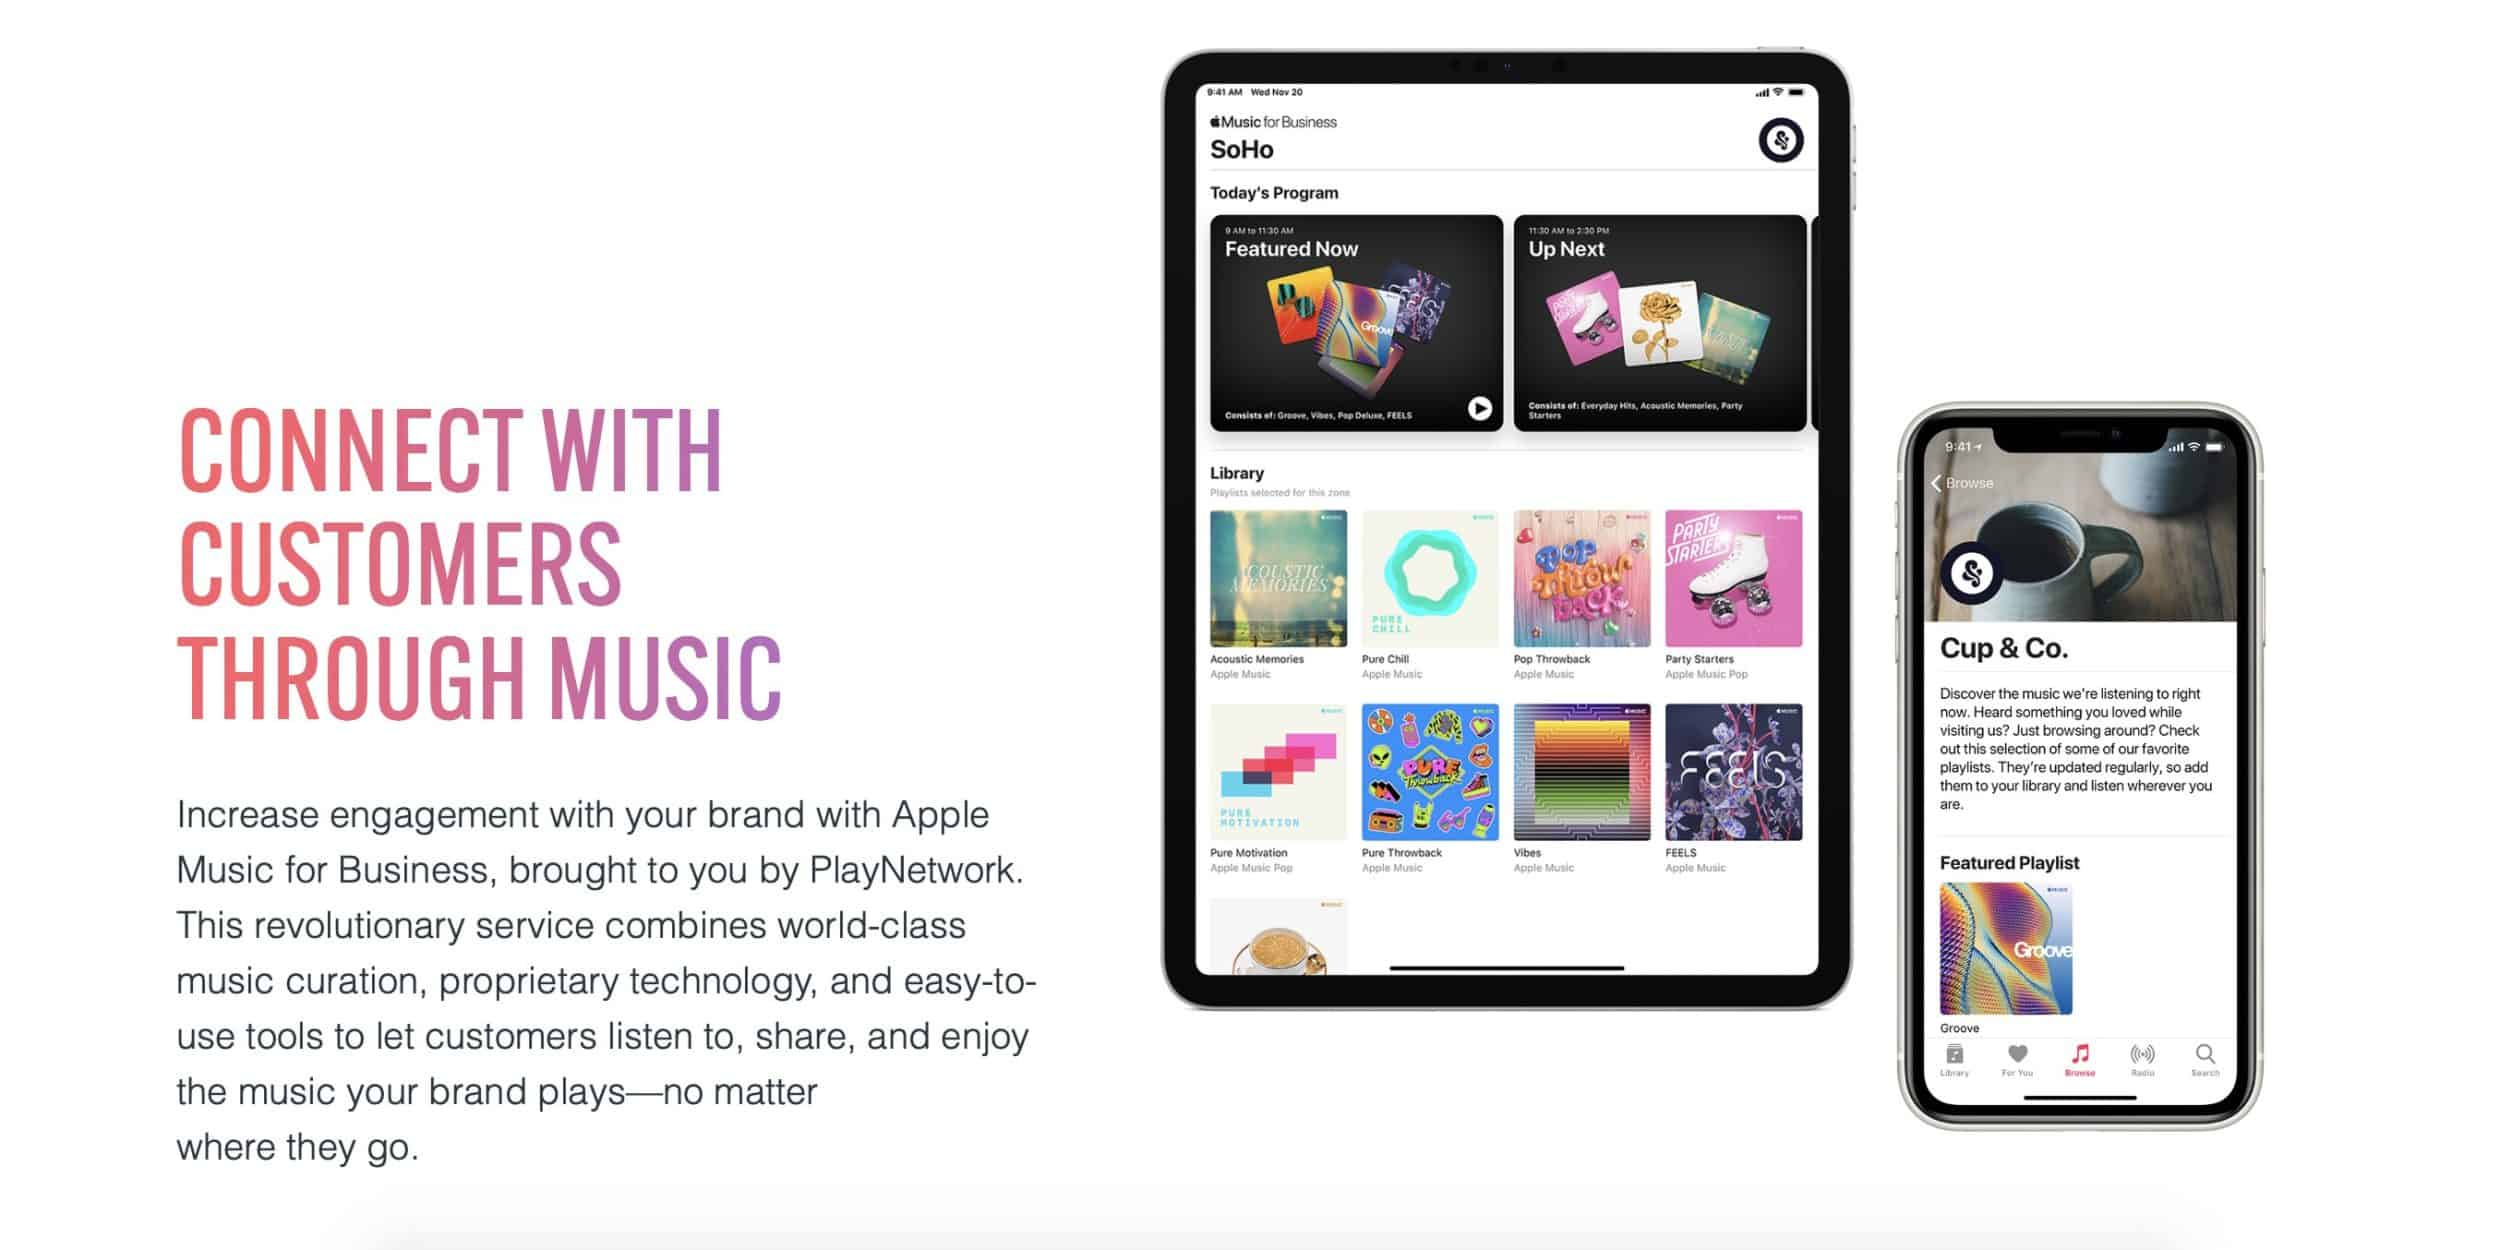 Apple's 'Music for Business' Targets Retail Stores, Launched